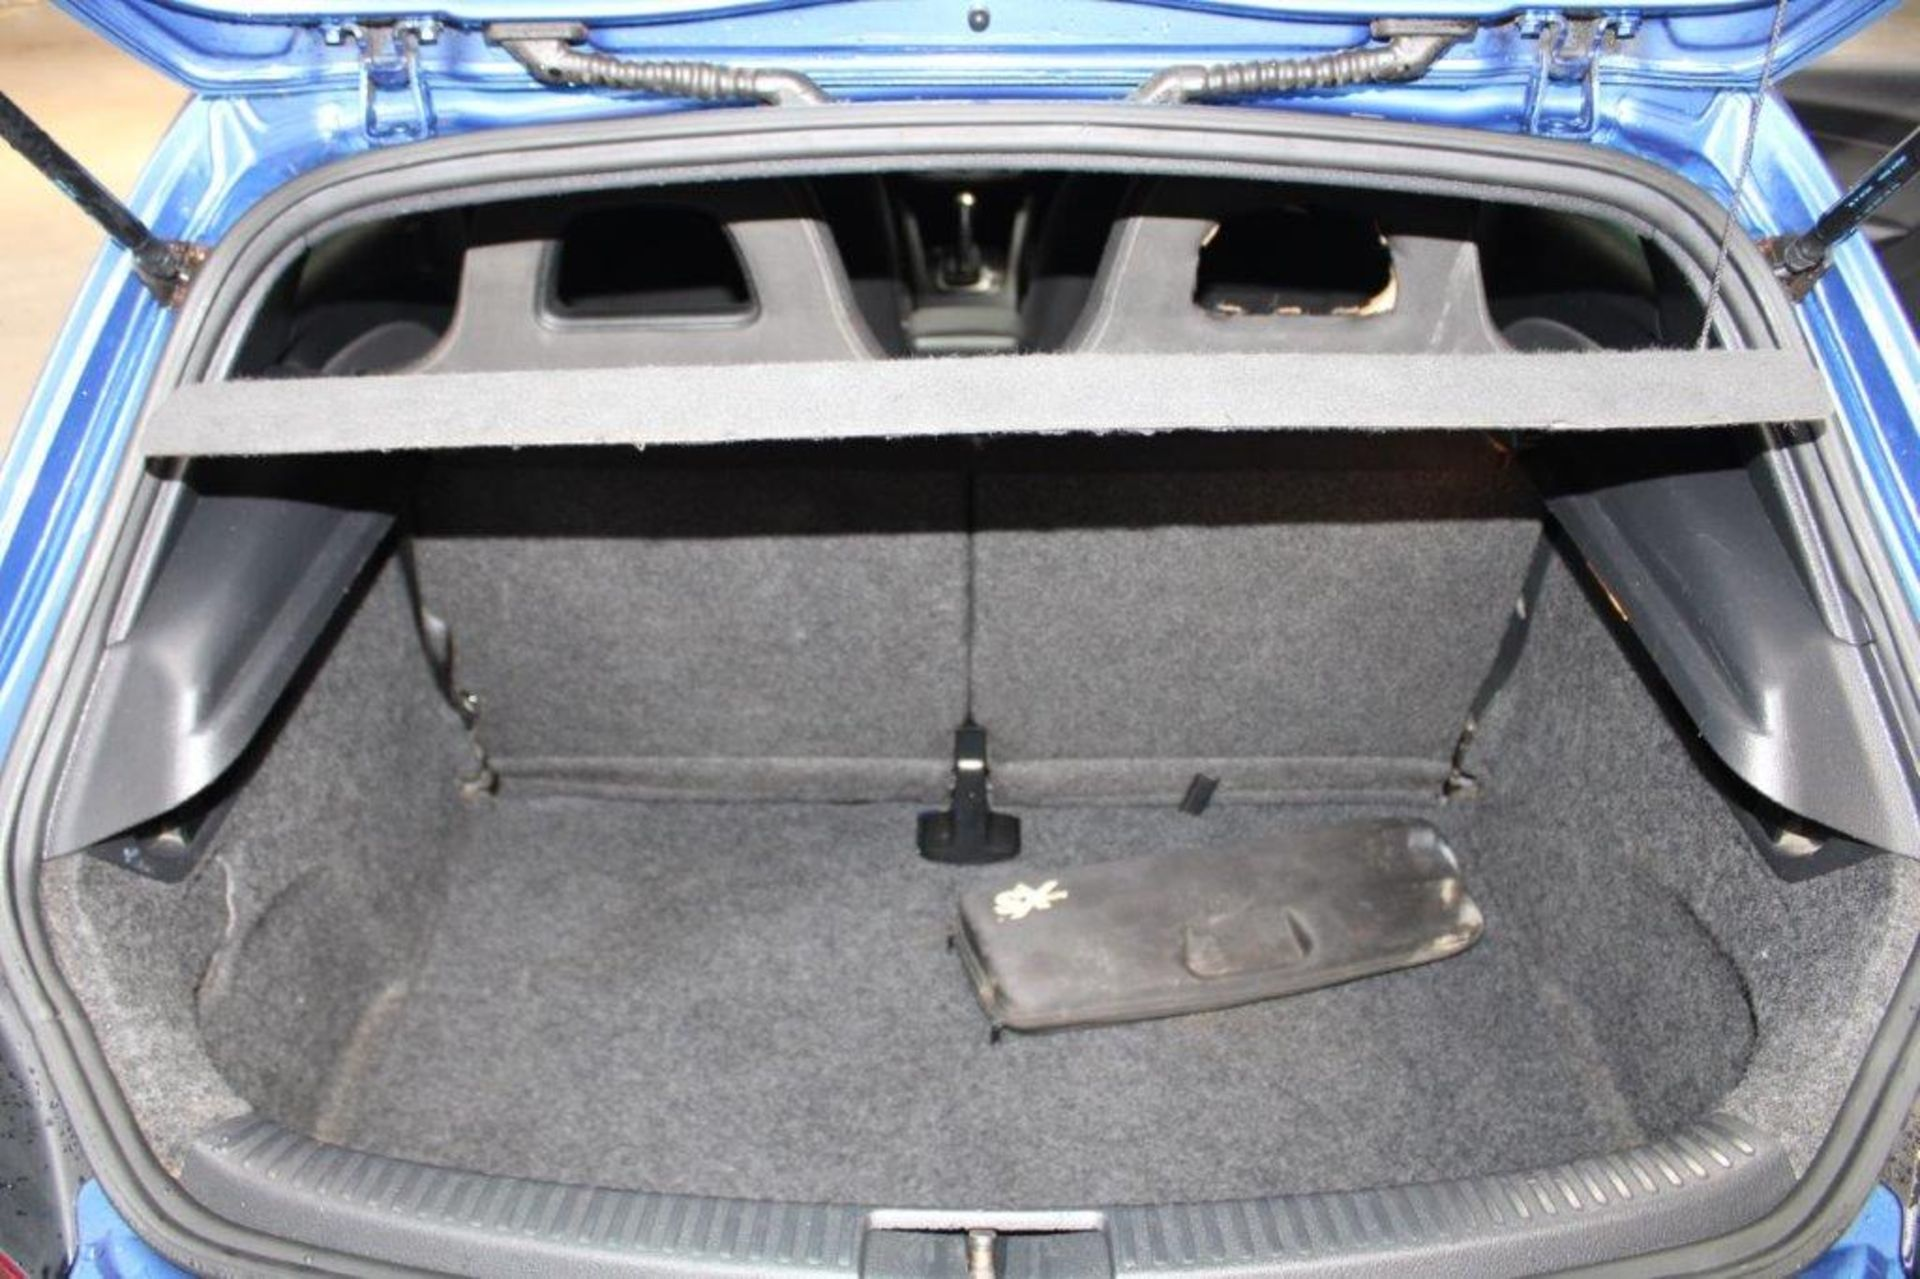 58 08 VW Scirocco GT - Image 26 of 29